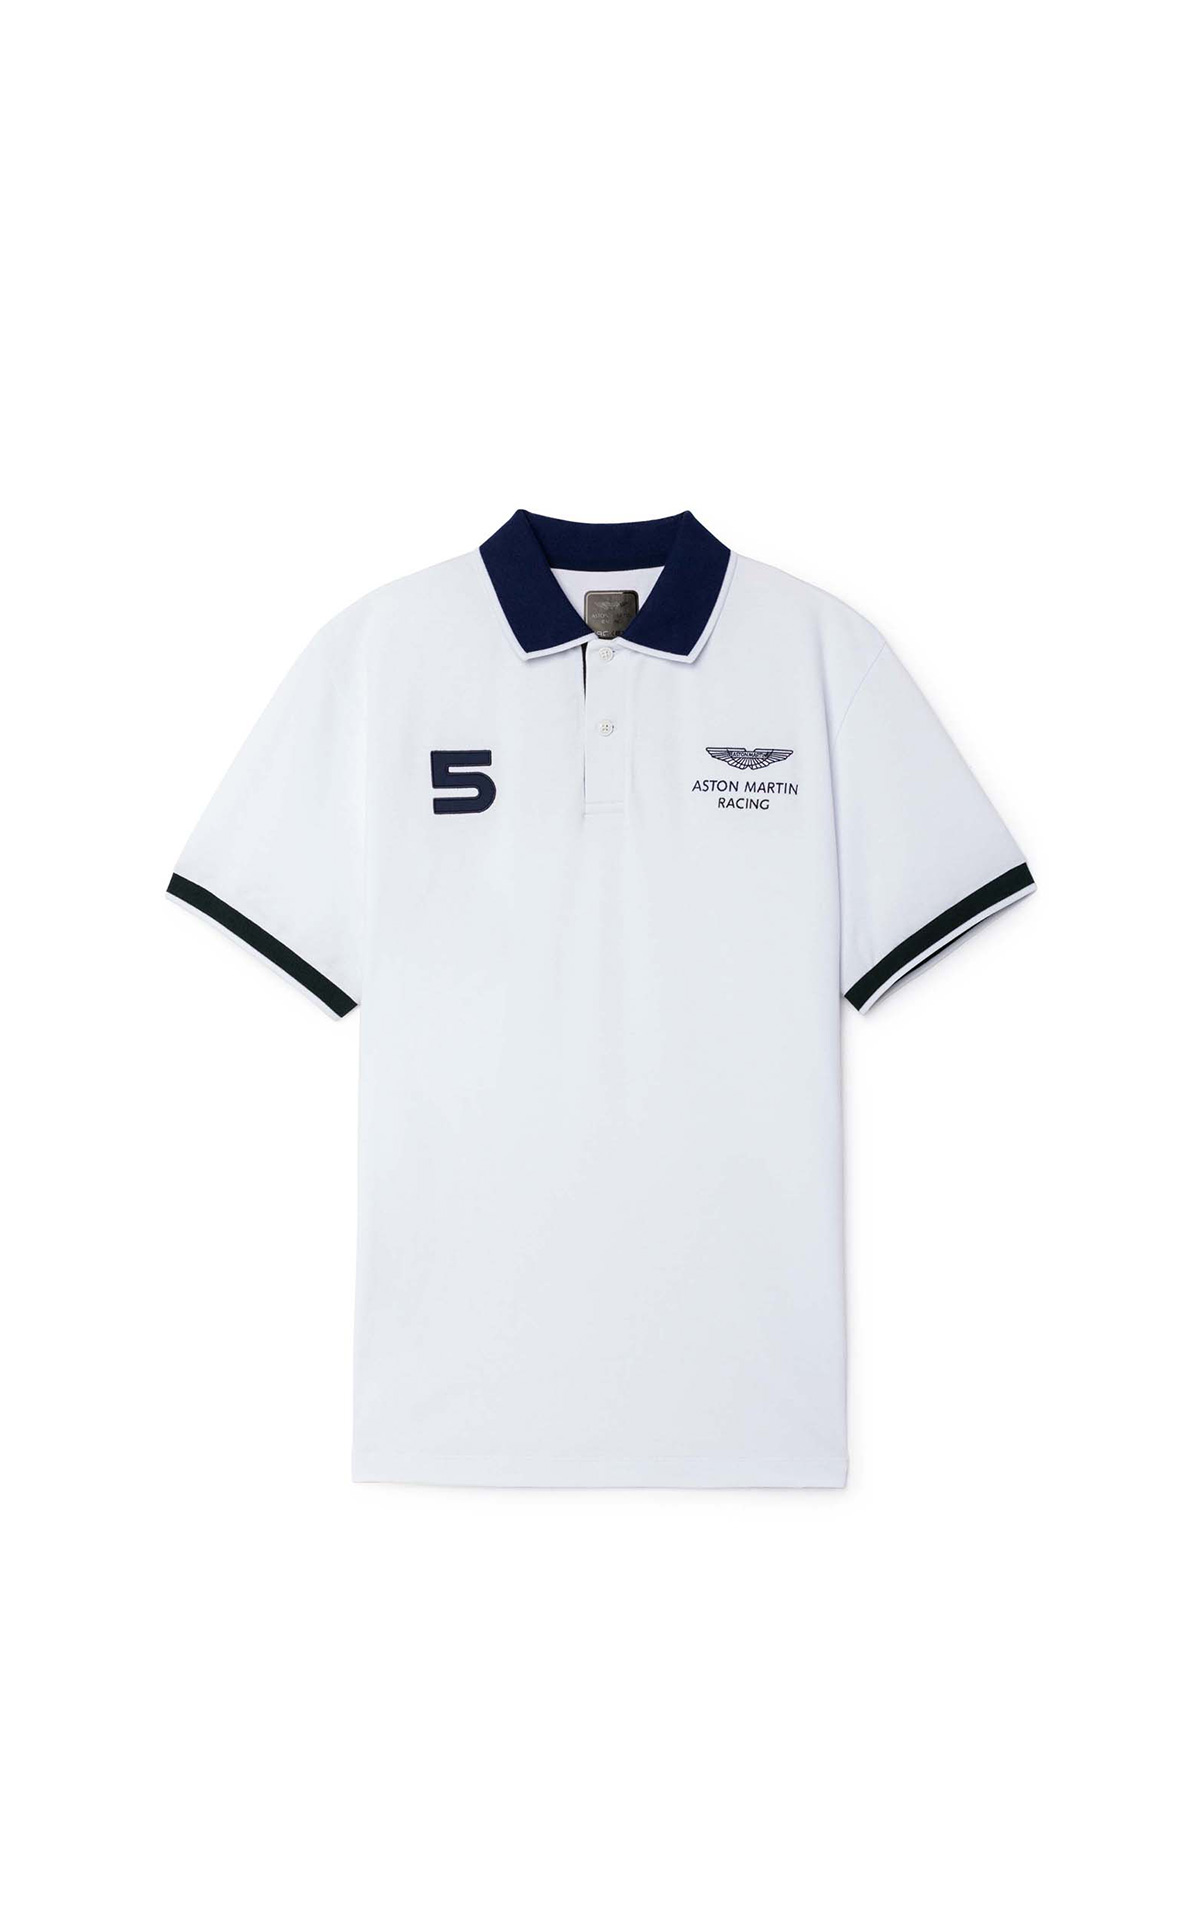 Hackett-London Aston Martin Racing Number Polo Shirt at The Bicester Village Shopping Collection